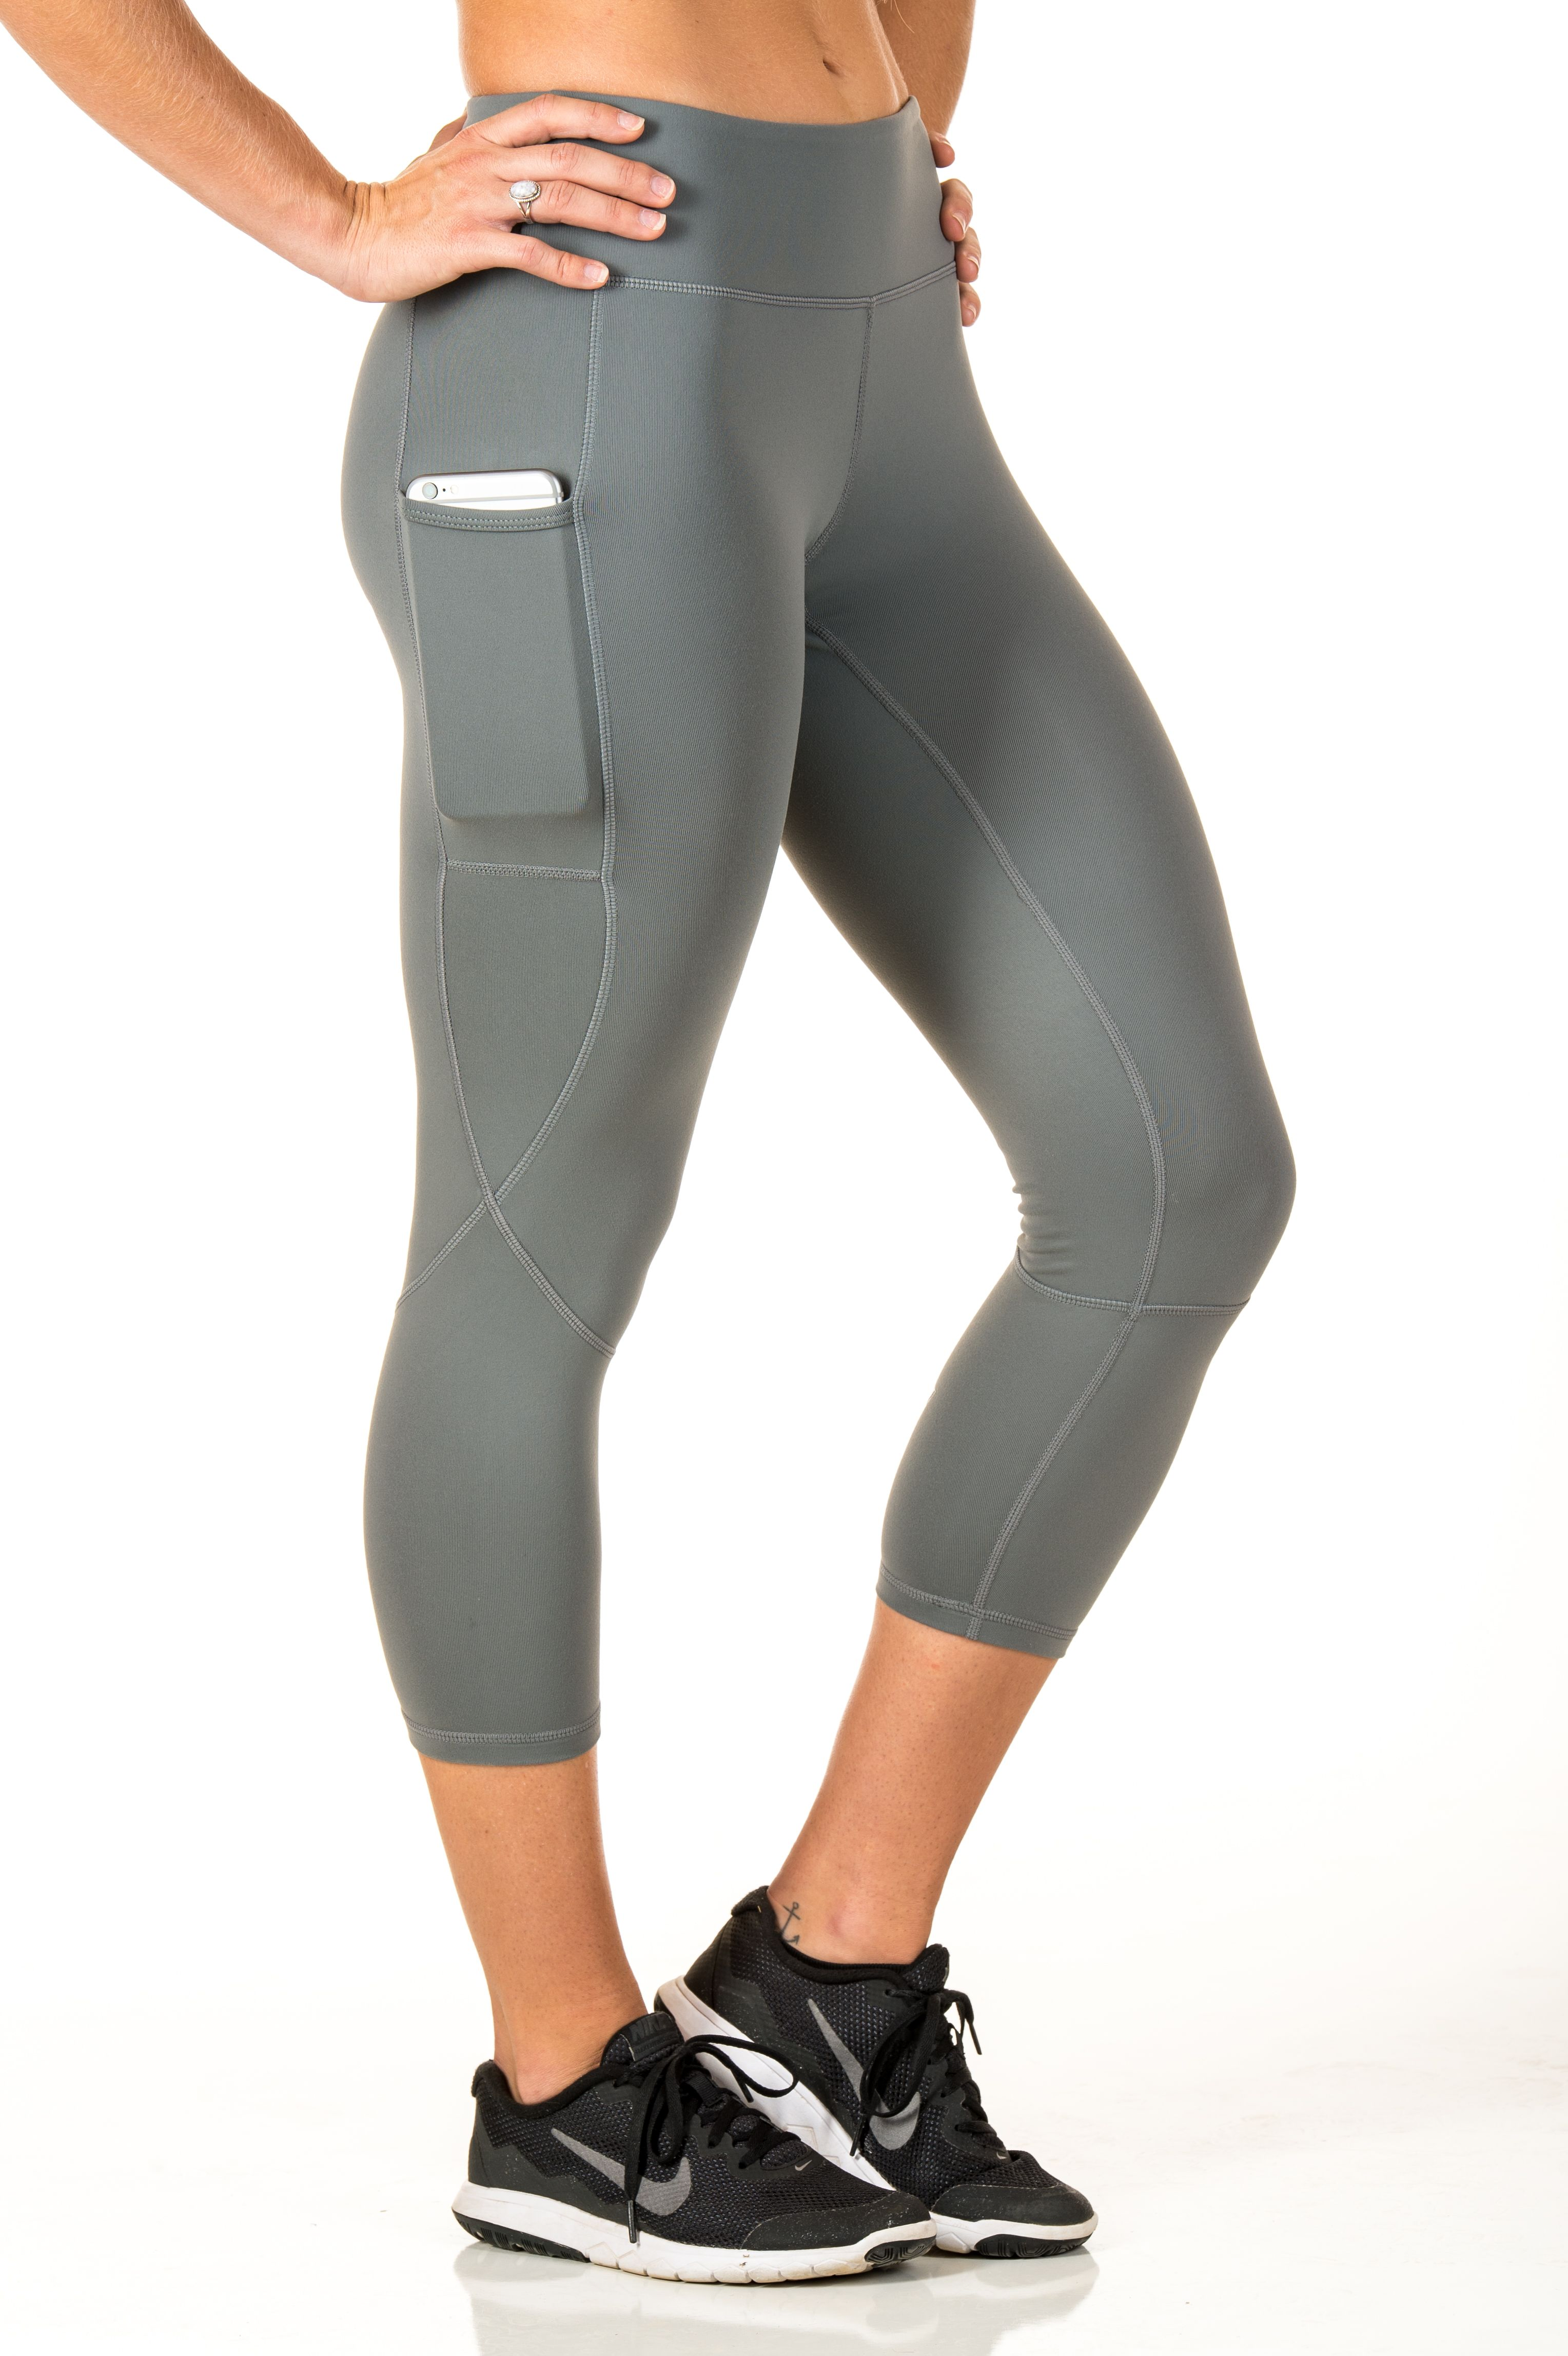 e1a5327d74c164 Platinum Carla - Having a cell phone pocket on your leggings will change  your life!